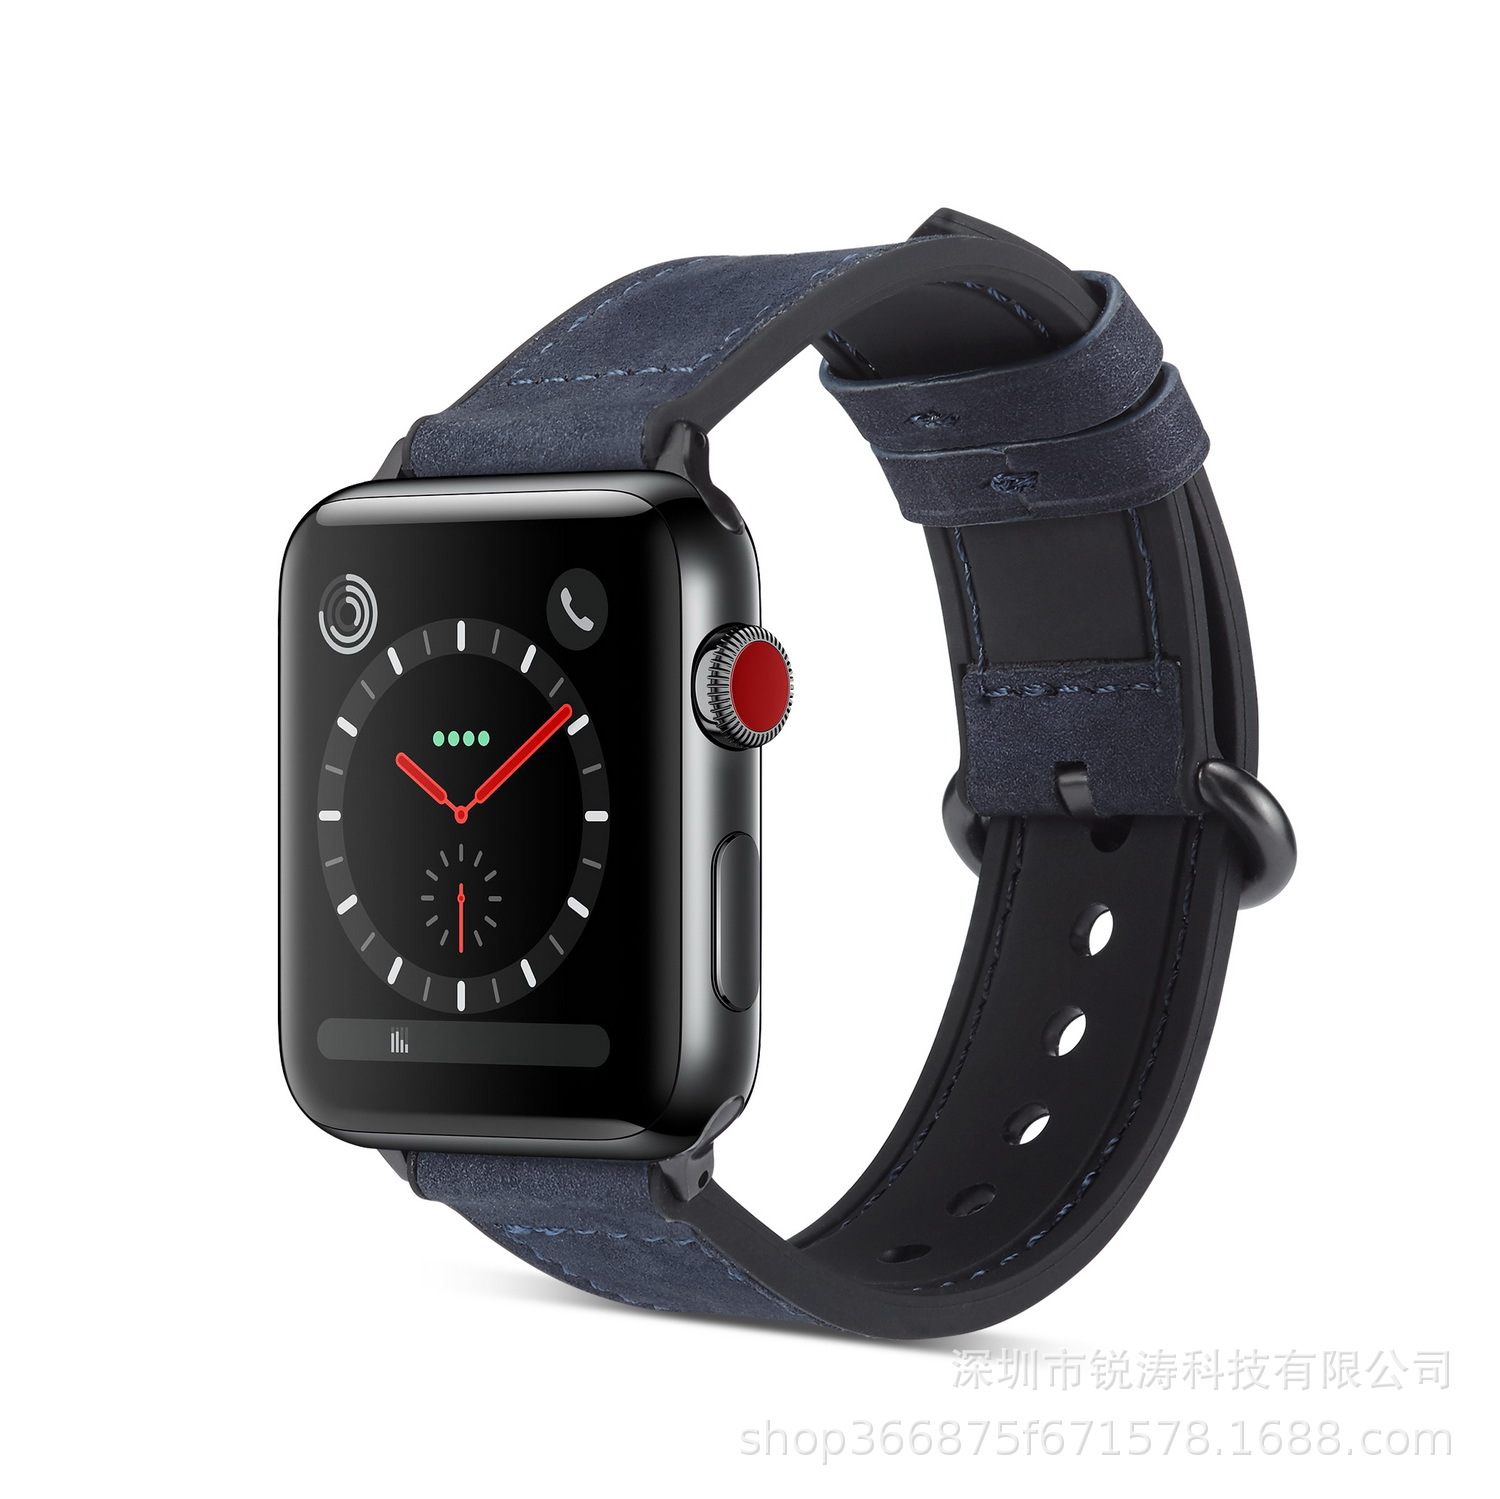 For Apple Watch 4 Generation Retro Dull Polish Watch Strap APPLE Watch Iwatch4 S Natural Leather Men's Wholesale